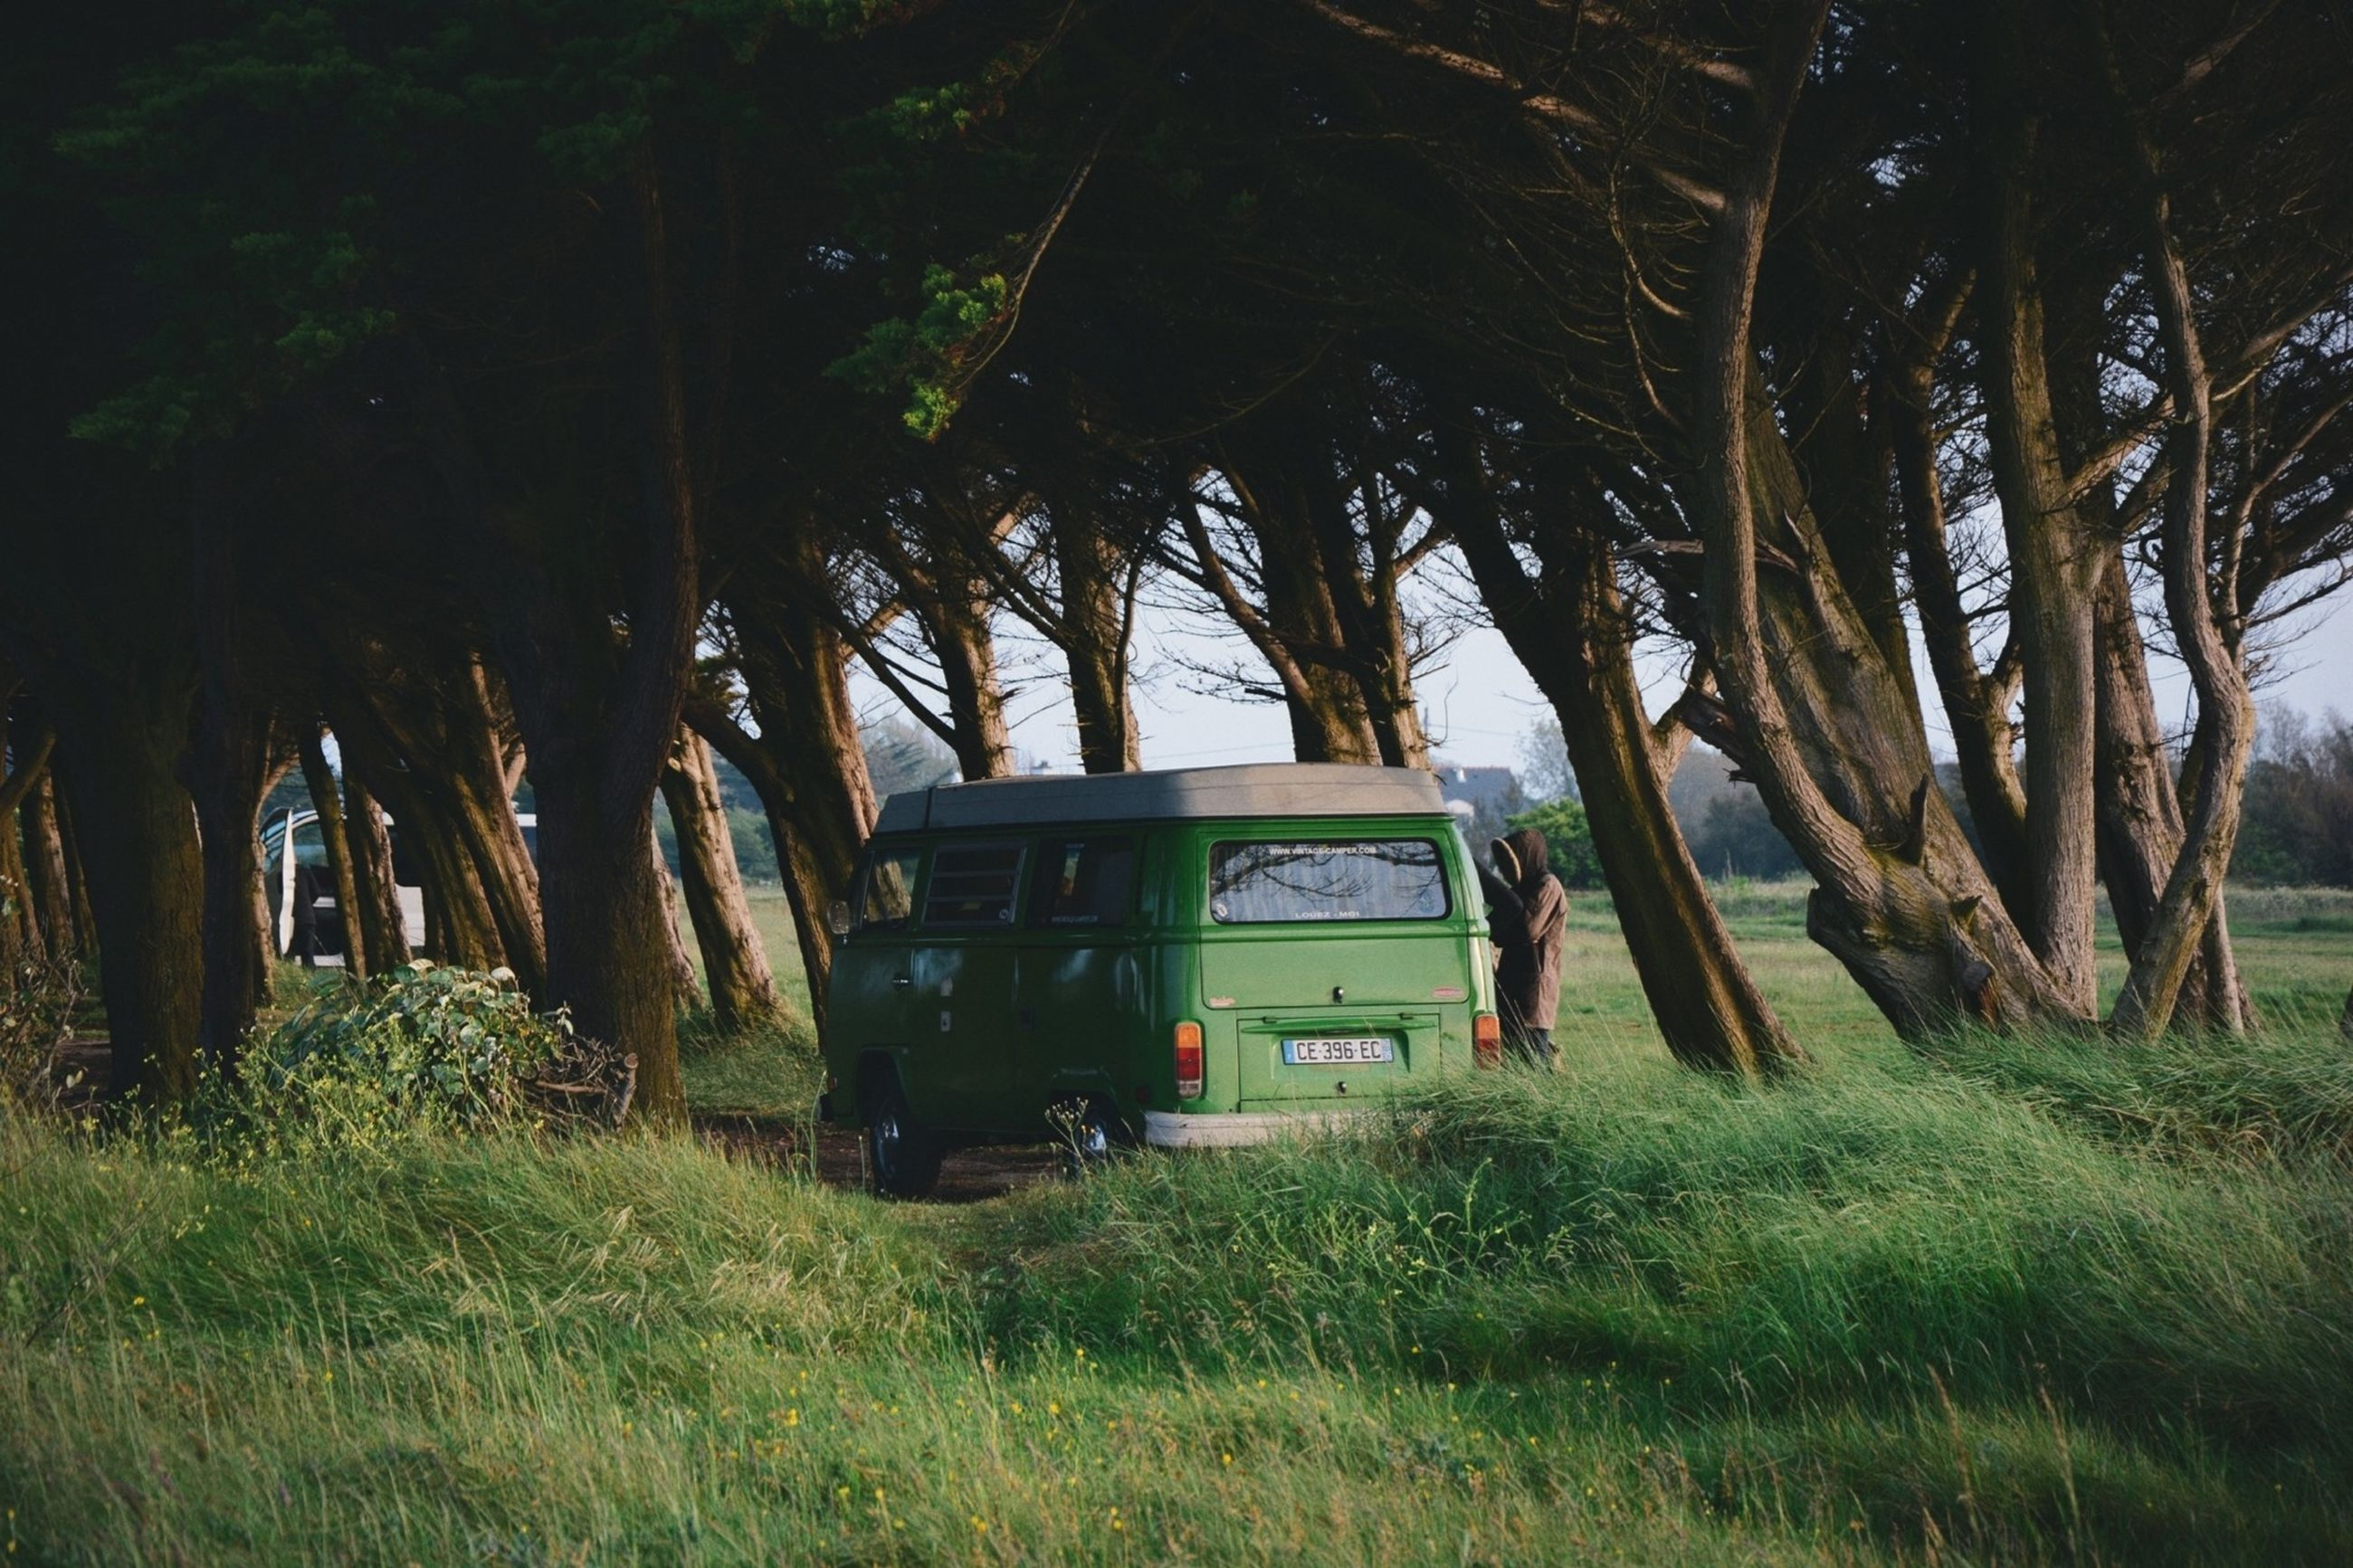 tree, grass, transportation, land vehicle, mode of transport, car, field, green color, growth, nature, grassy, tree trunk, sunlight, outdoors, travel, day, landscape, tranquility, no people, plant